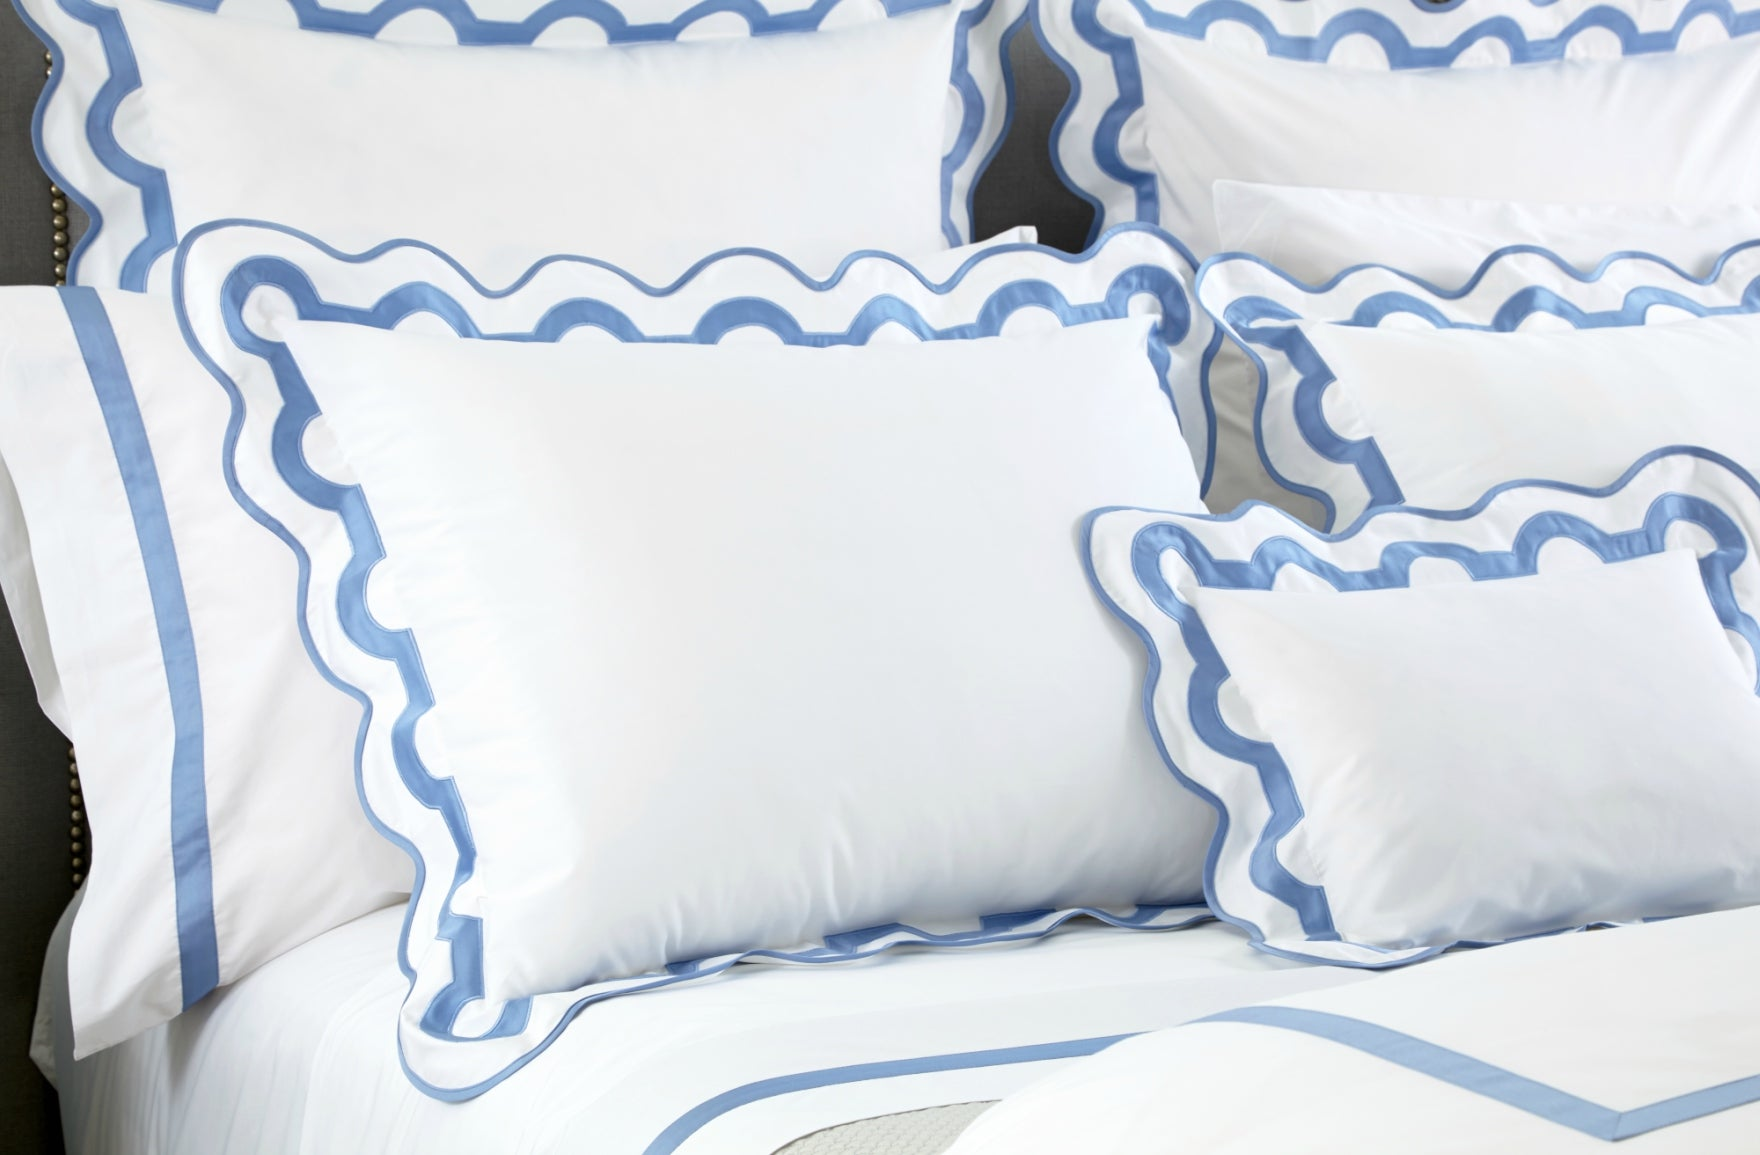 Scalloped Furniture & Decor   Matouk Linens   Shop now at LuxDeco.com and read more in The Luxurist